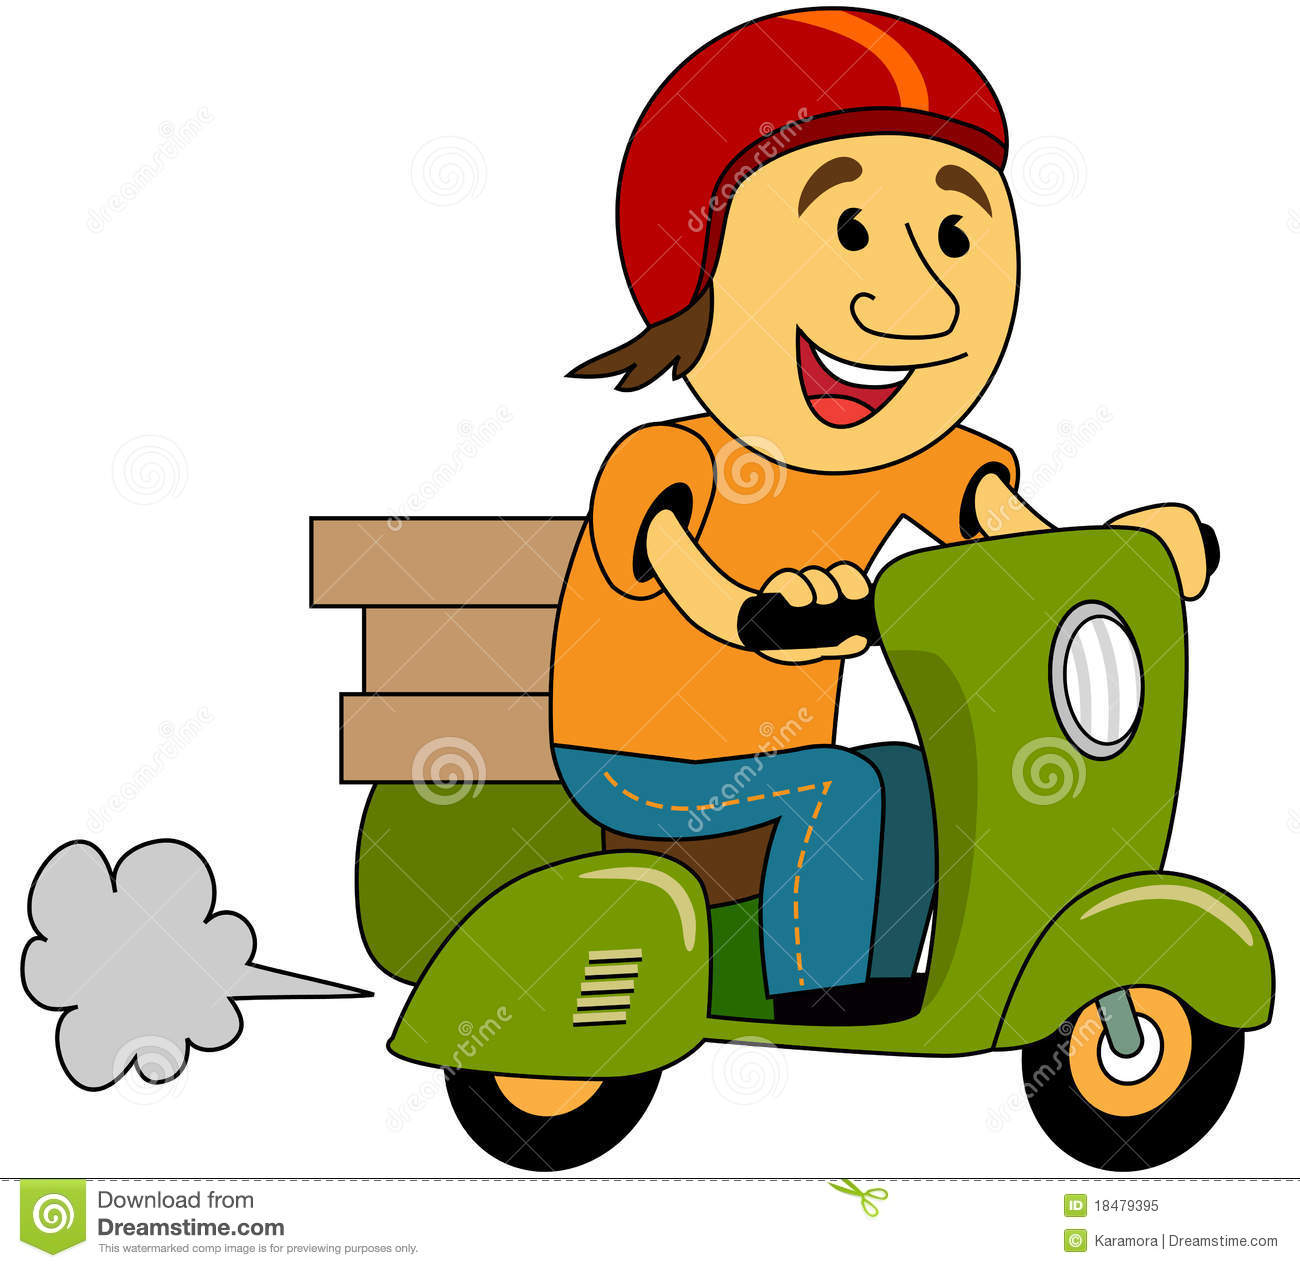 Deliver clipart 20 free Cliparts | Download images on ...